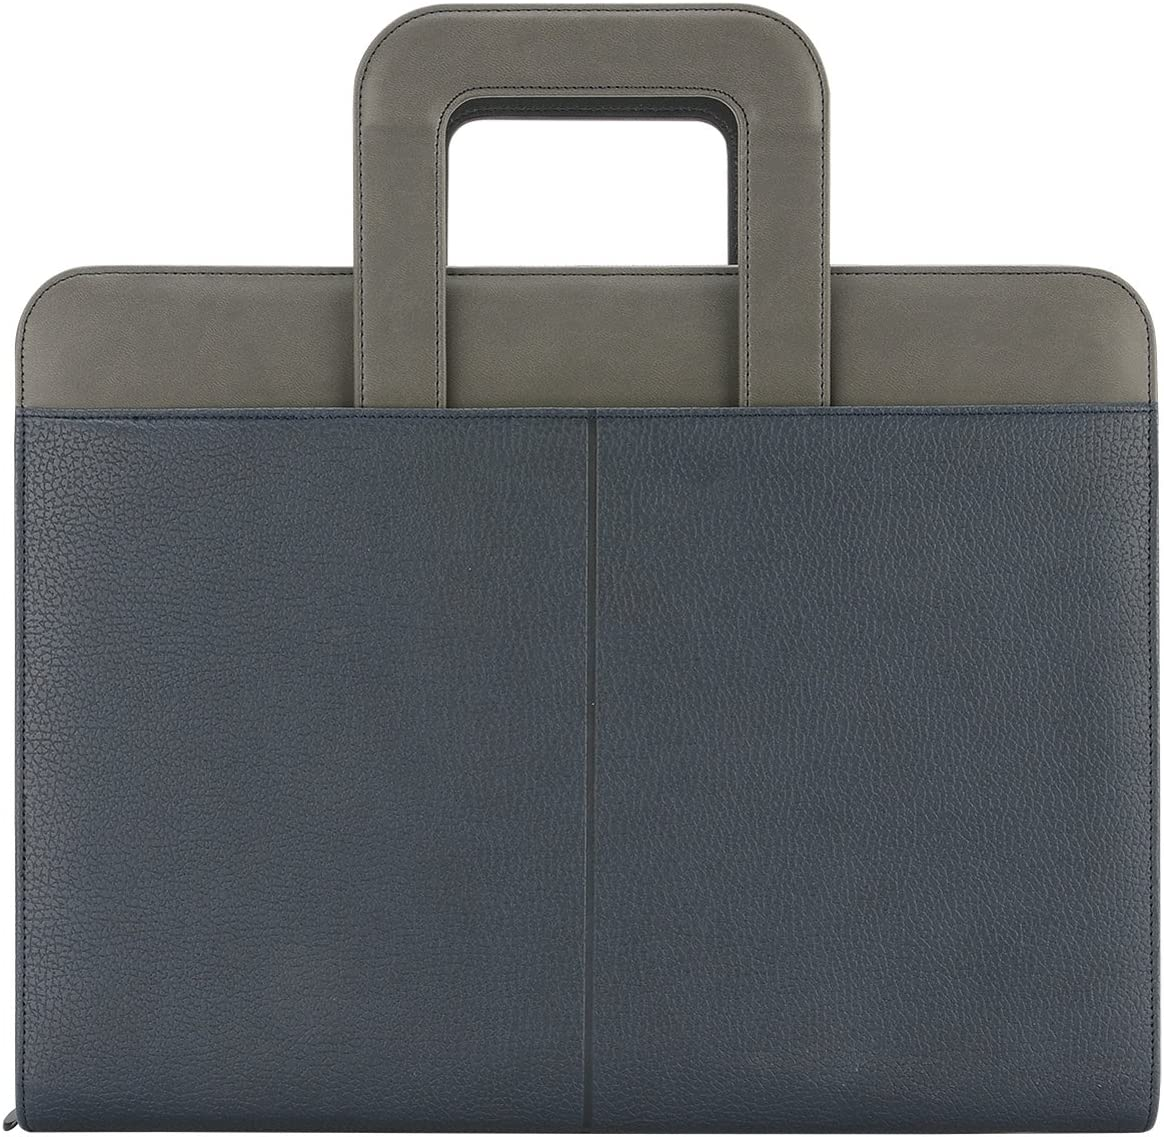 "NuVision Binder Zip Briefcase Padfolio, Elegant Navy Blue & Grey Stylish Zippered PU Leather Portfolio with Handle, Pockets & Refillable 8 ½ x 11"" Notepad-3 Ring Binder, can Hold Mini Pad!"